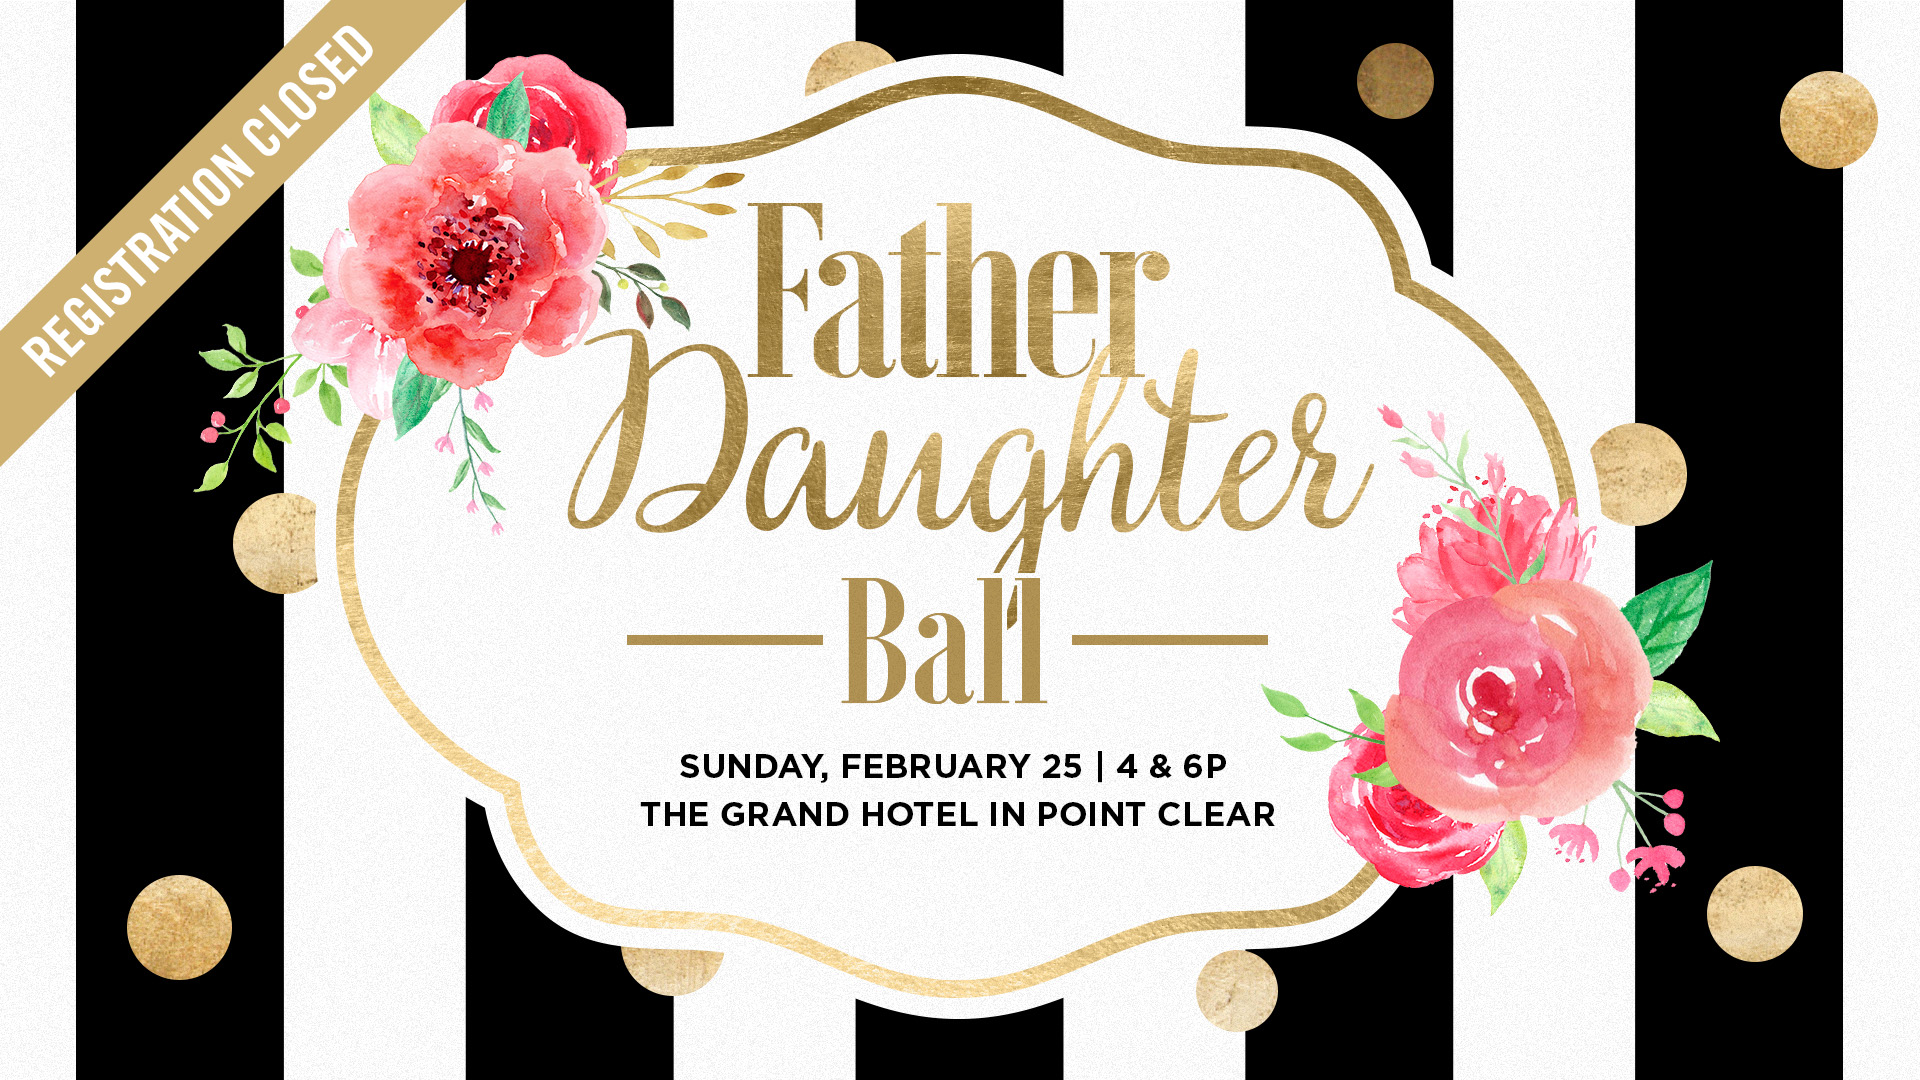 Father-Daughter Ball